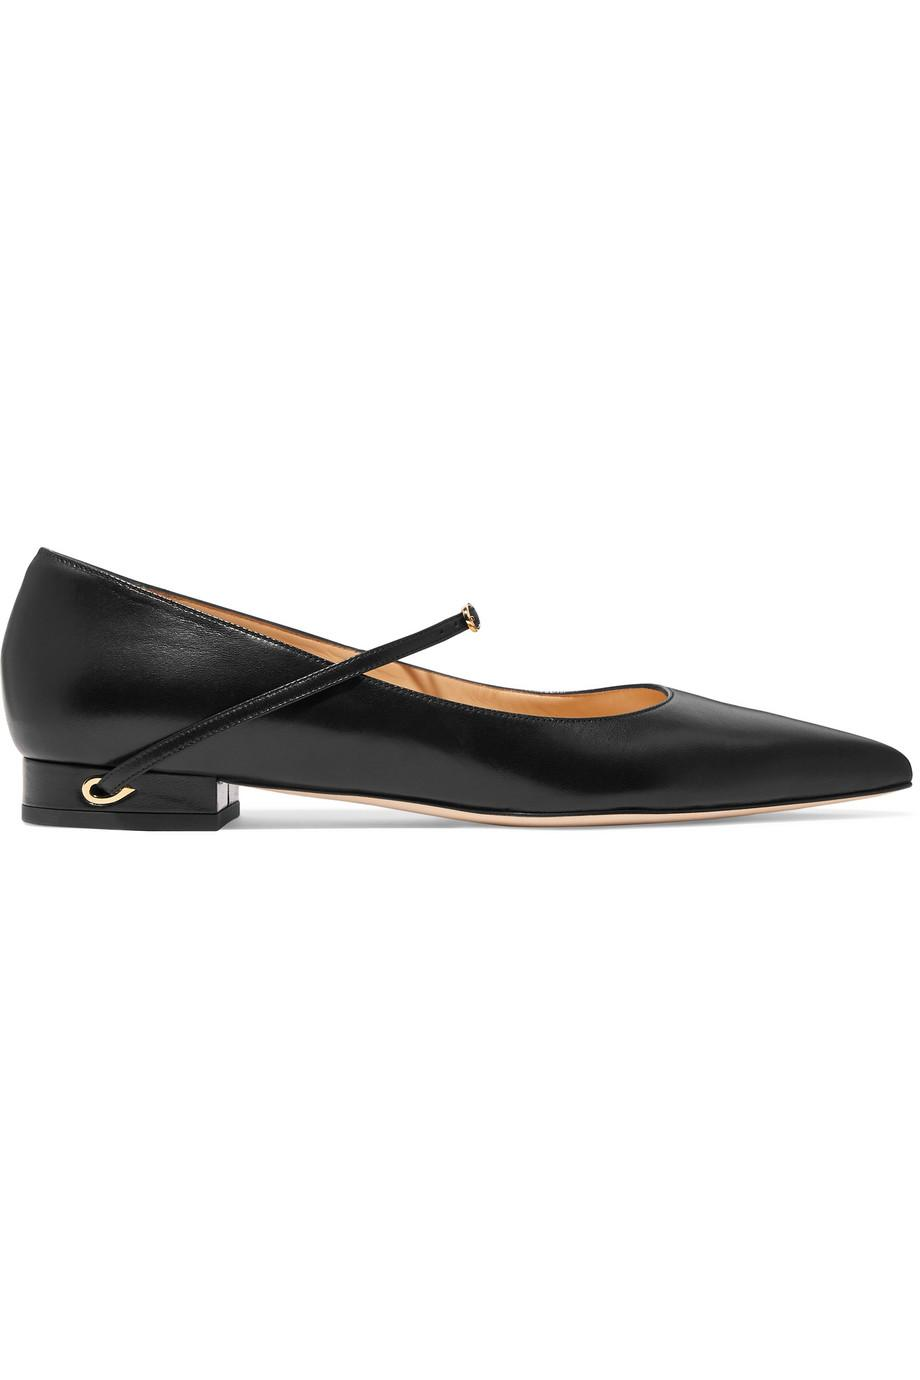 Lorenzo Leather Point-toe Flats - Black Jennifer Chamandi cdFcFML